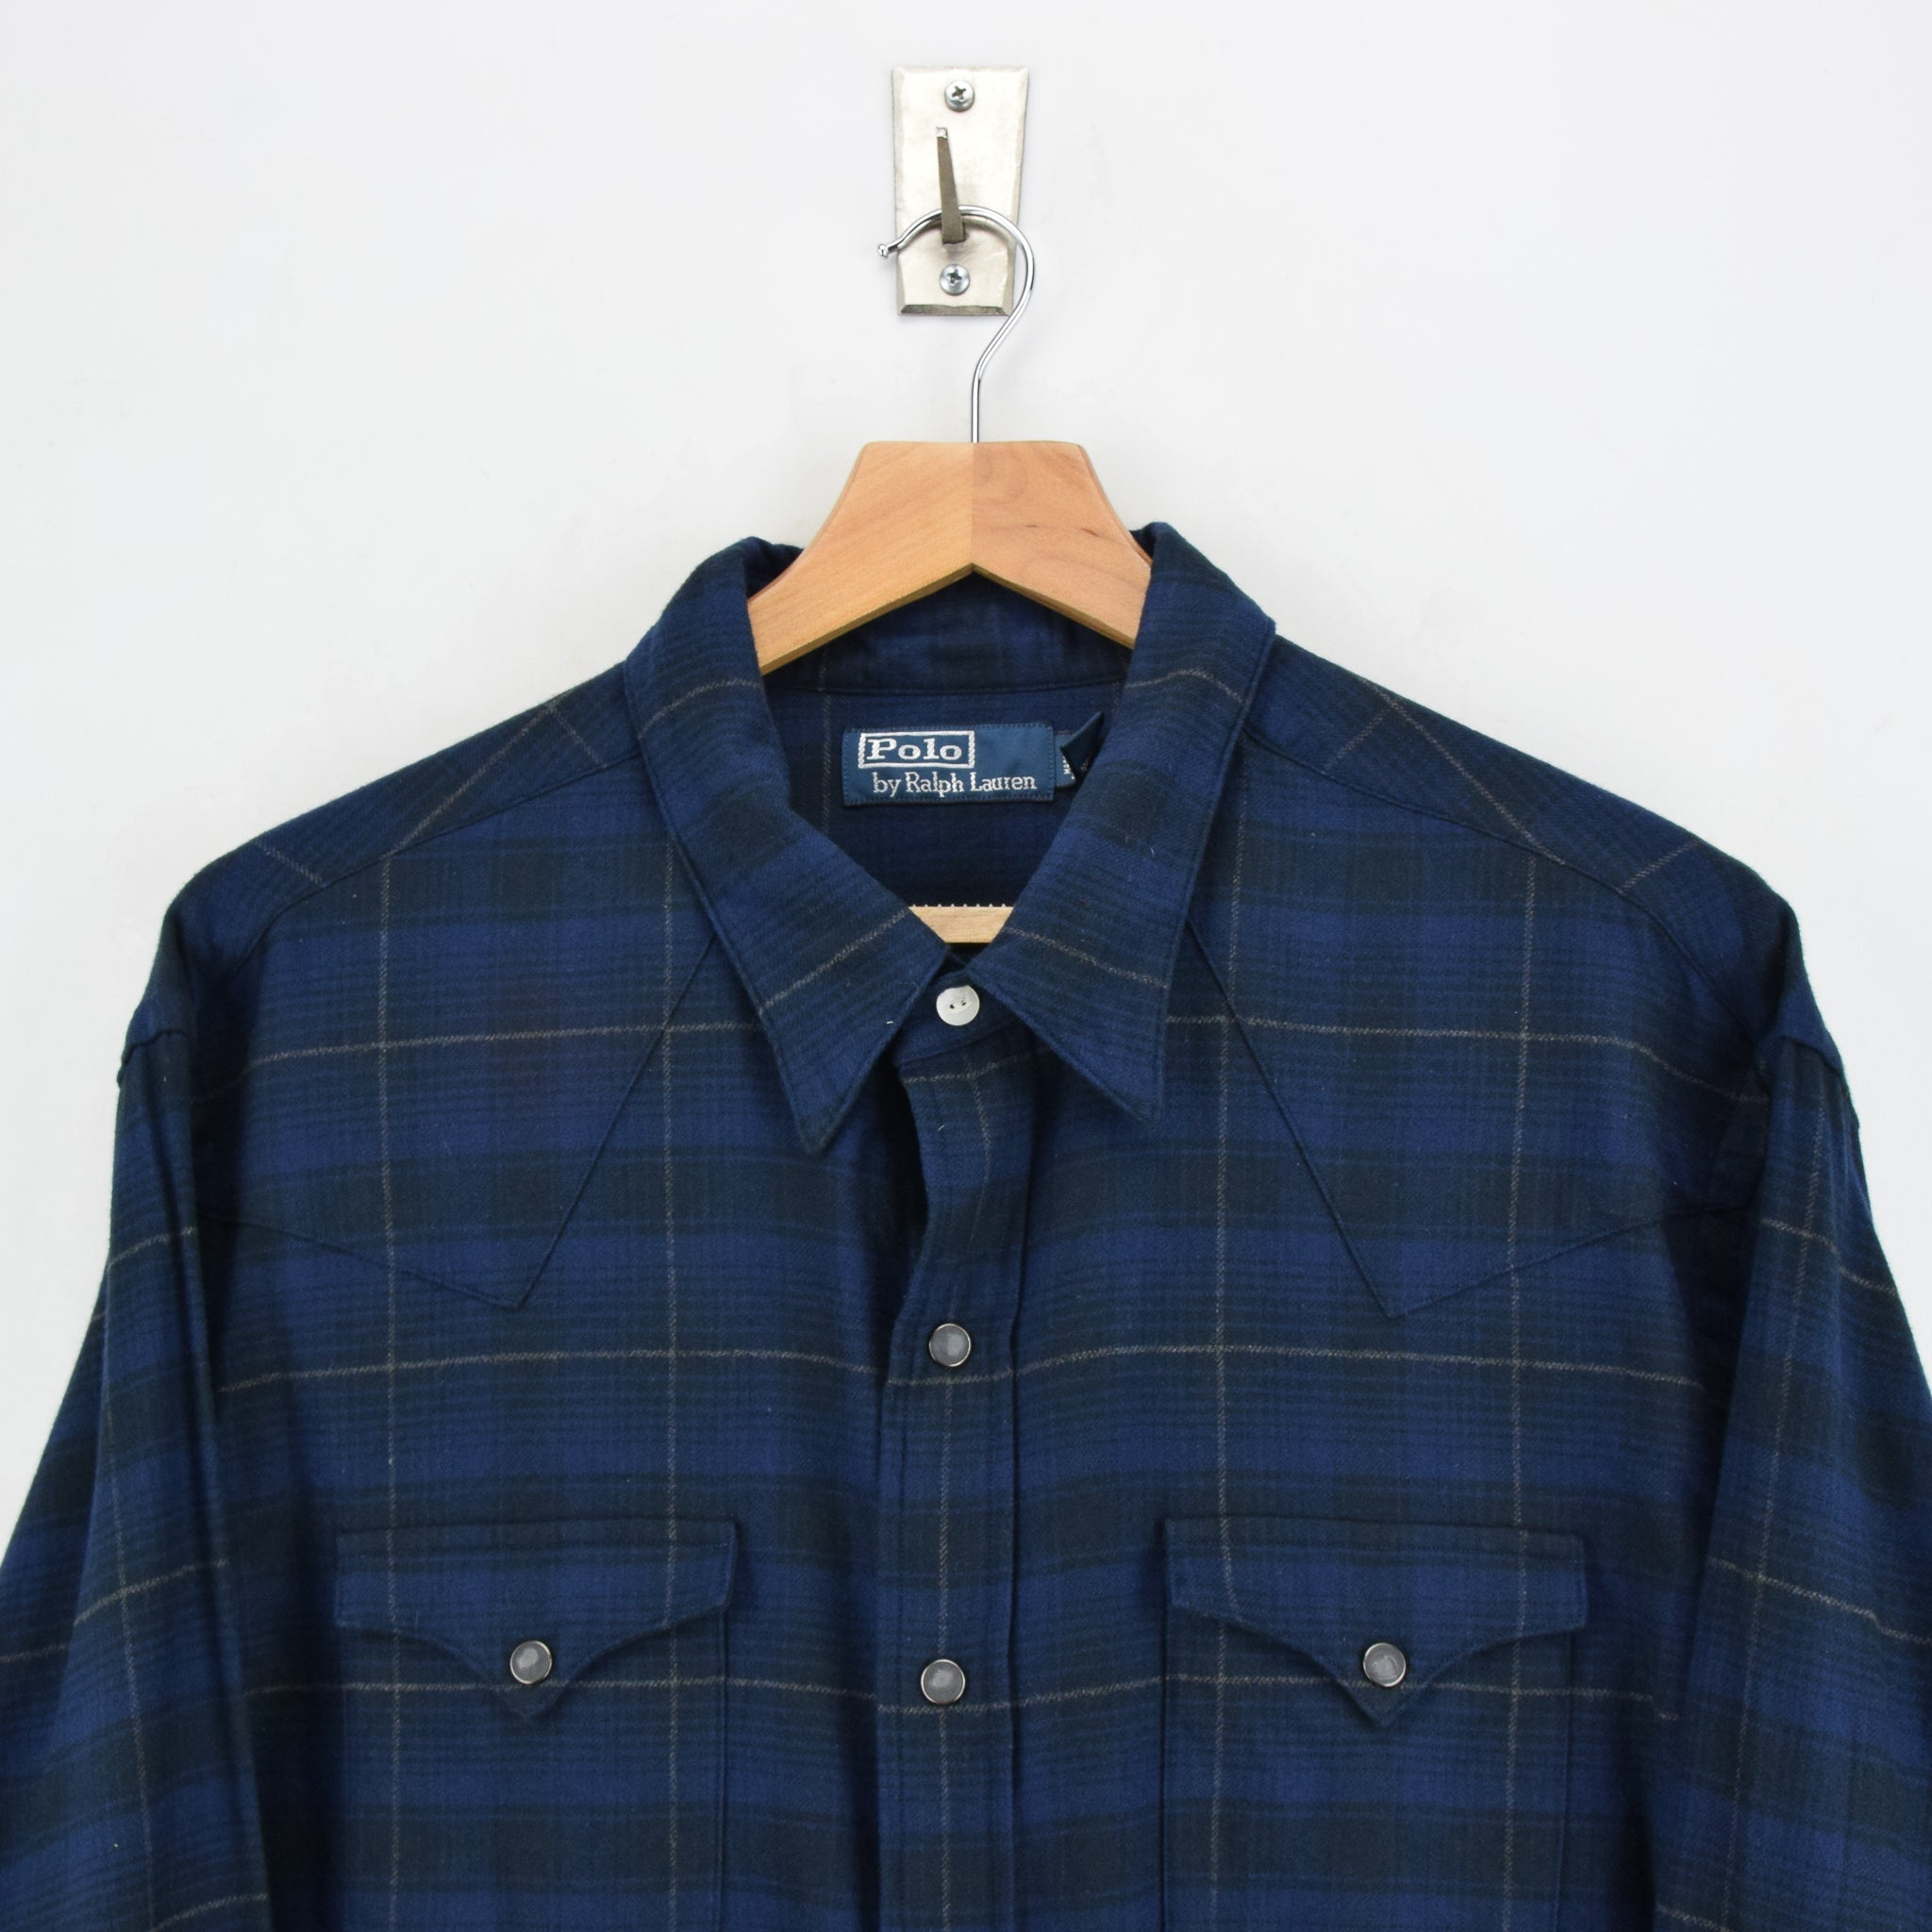 Ralph Lauren Polo Blue Check Cotton Western Style Shirt Long Sleeve XXL chest